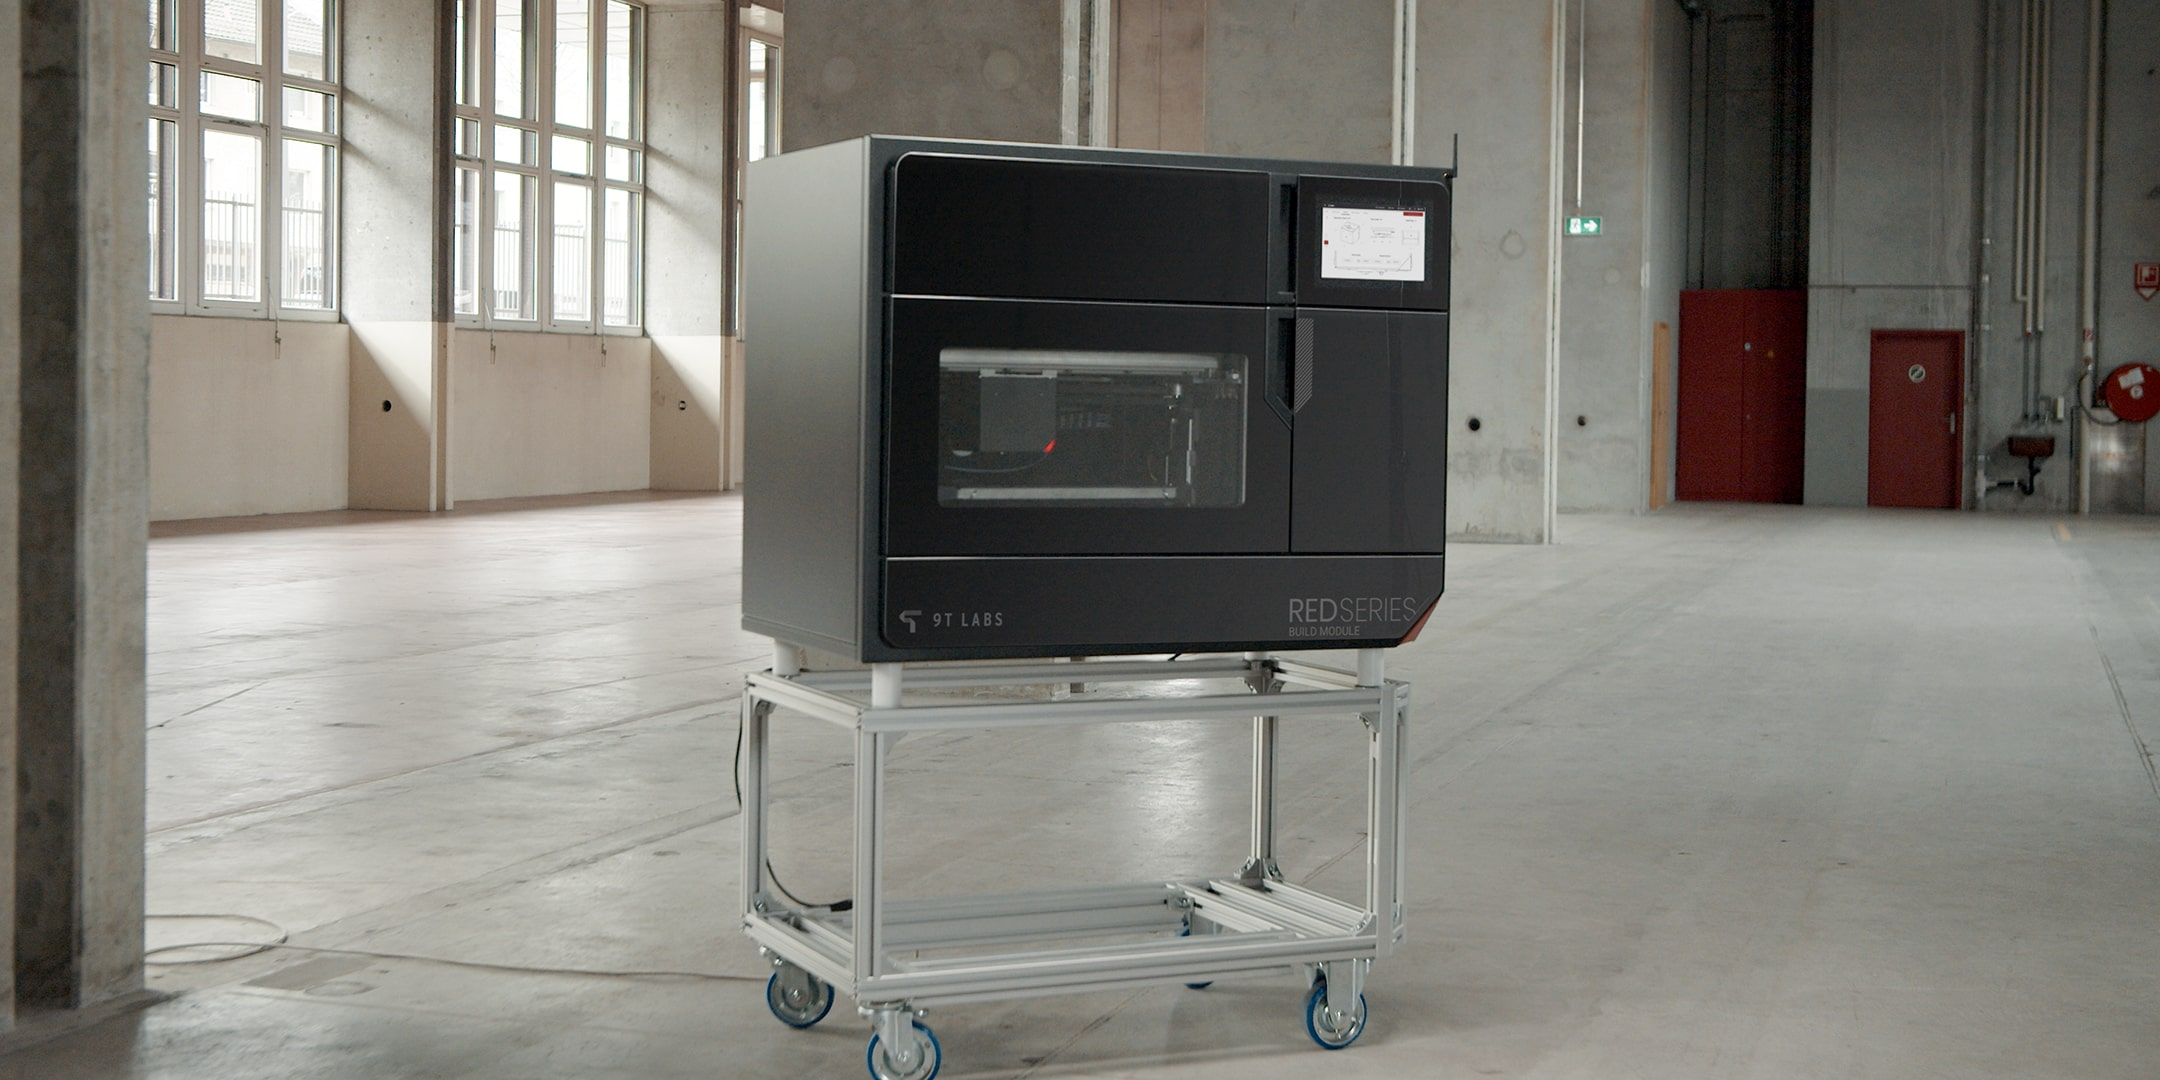 9T Labs build module for 3d printing of carbon composites